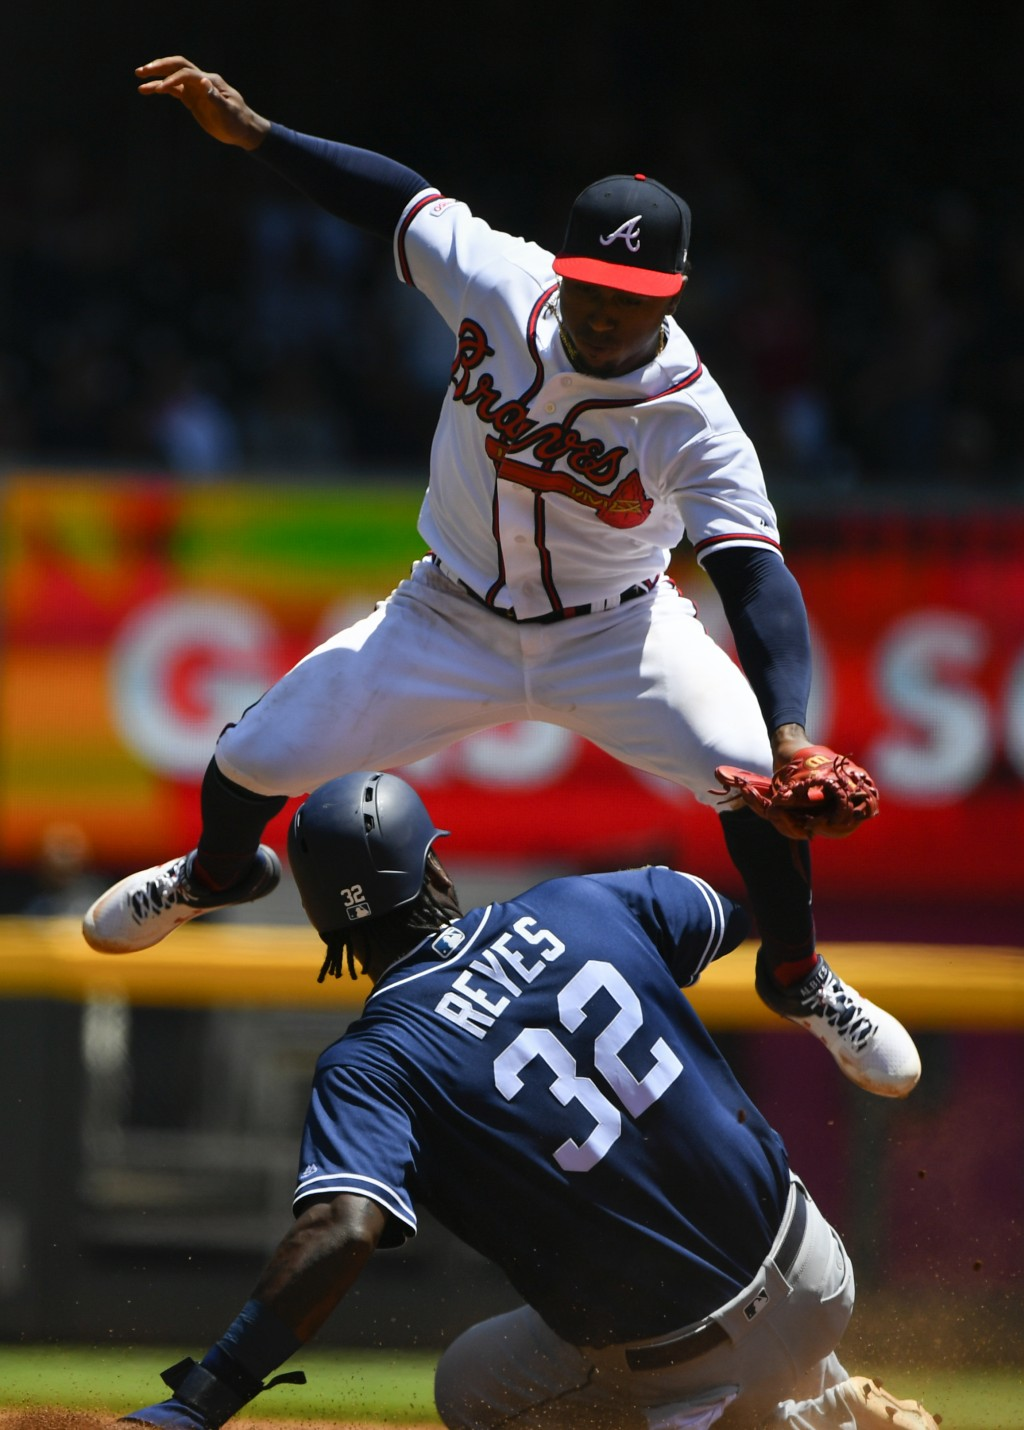 San Diego Padres' Franmil Reyes (32) is safe at second base as Atlanta Braves second baseman Ozzie Albies comes down on him after going up for a throw